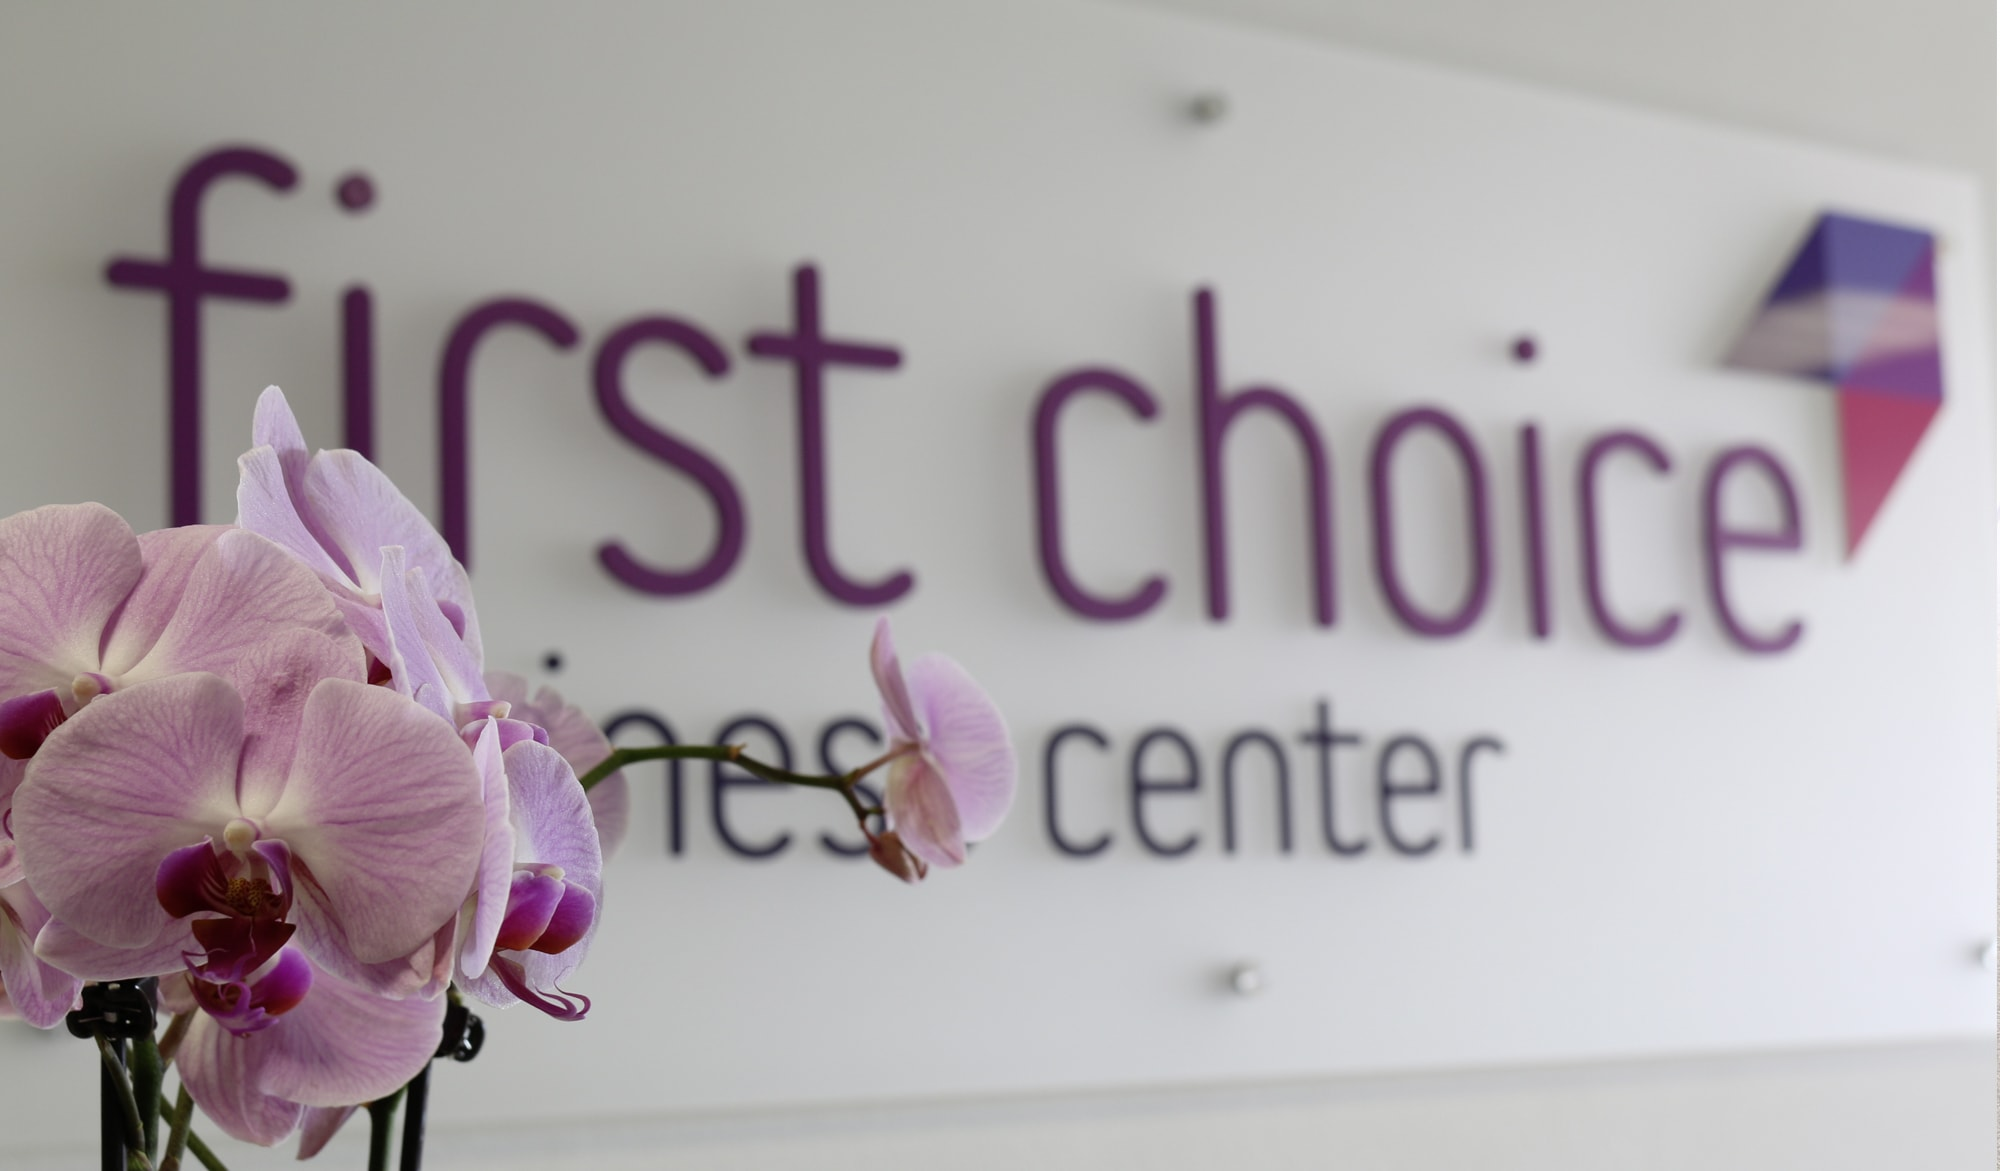 first choice business center signage